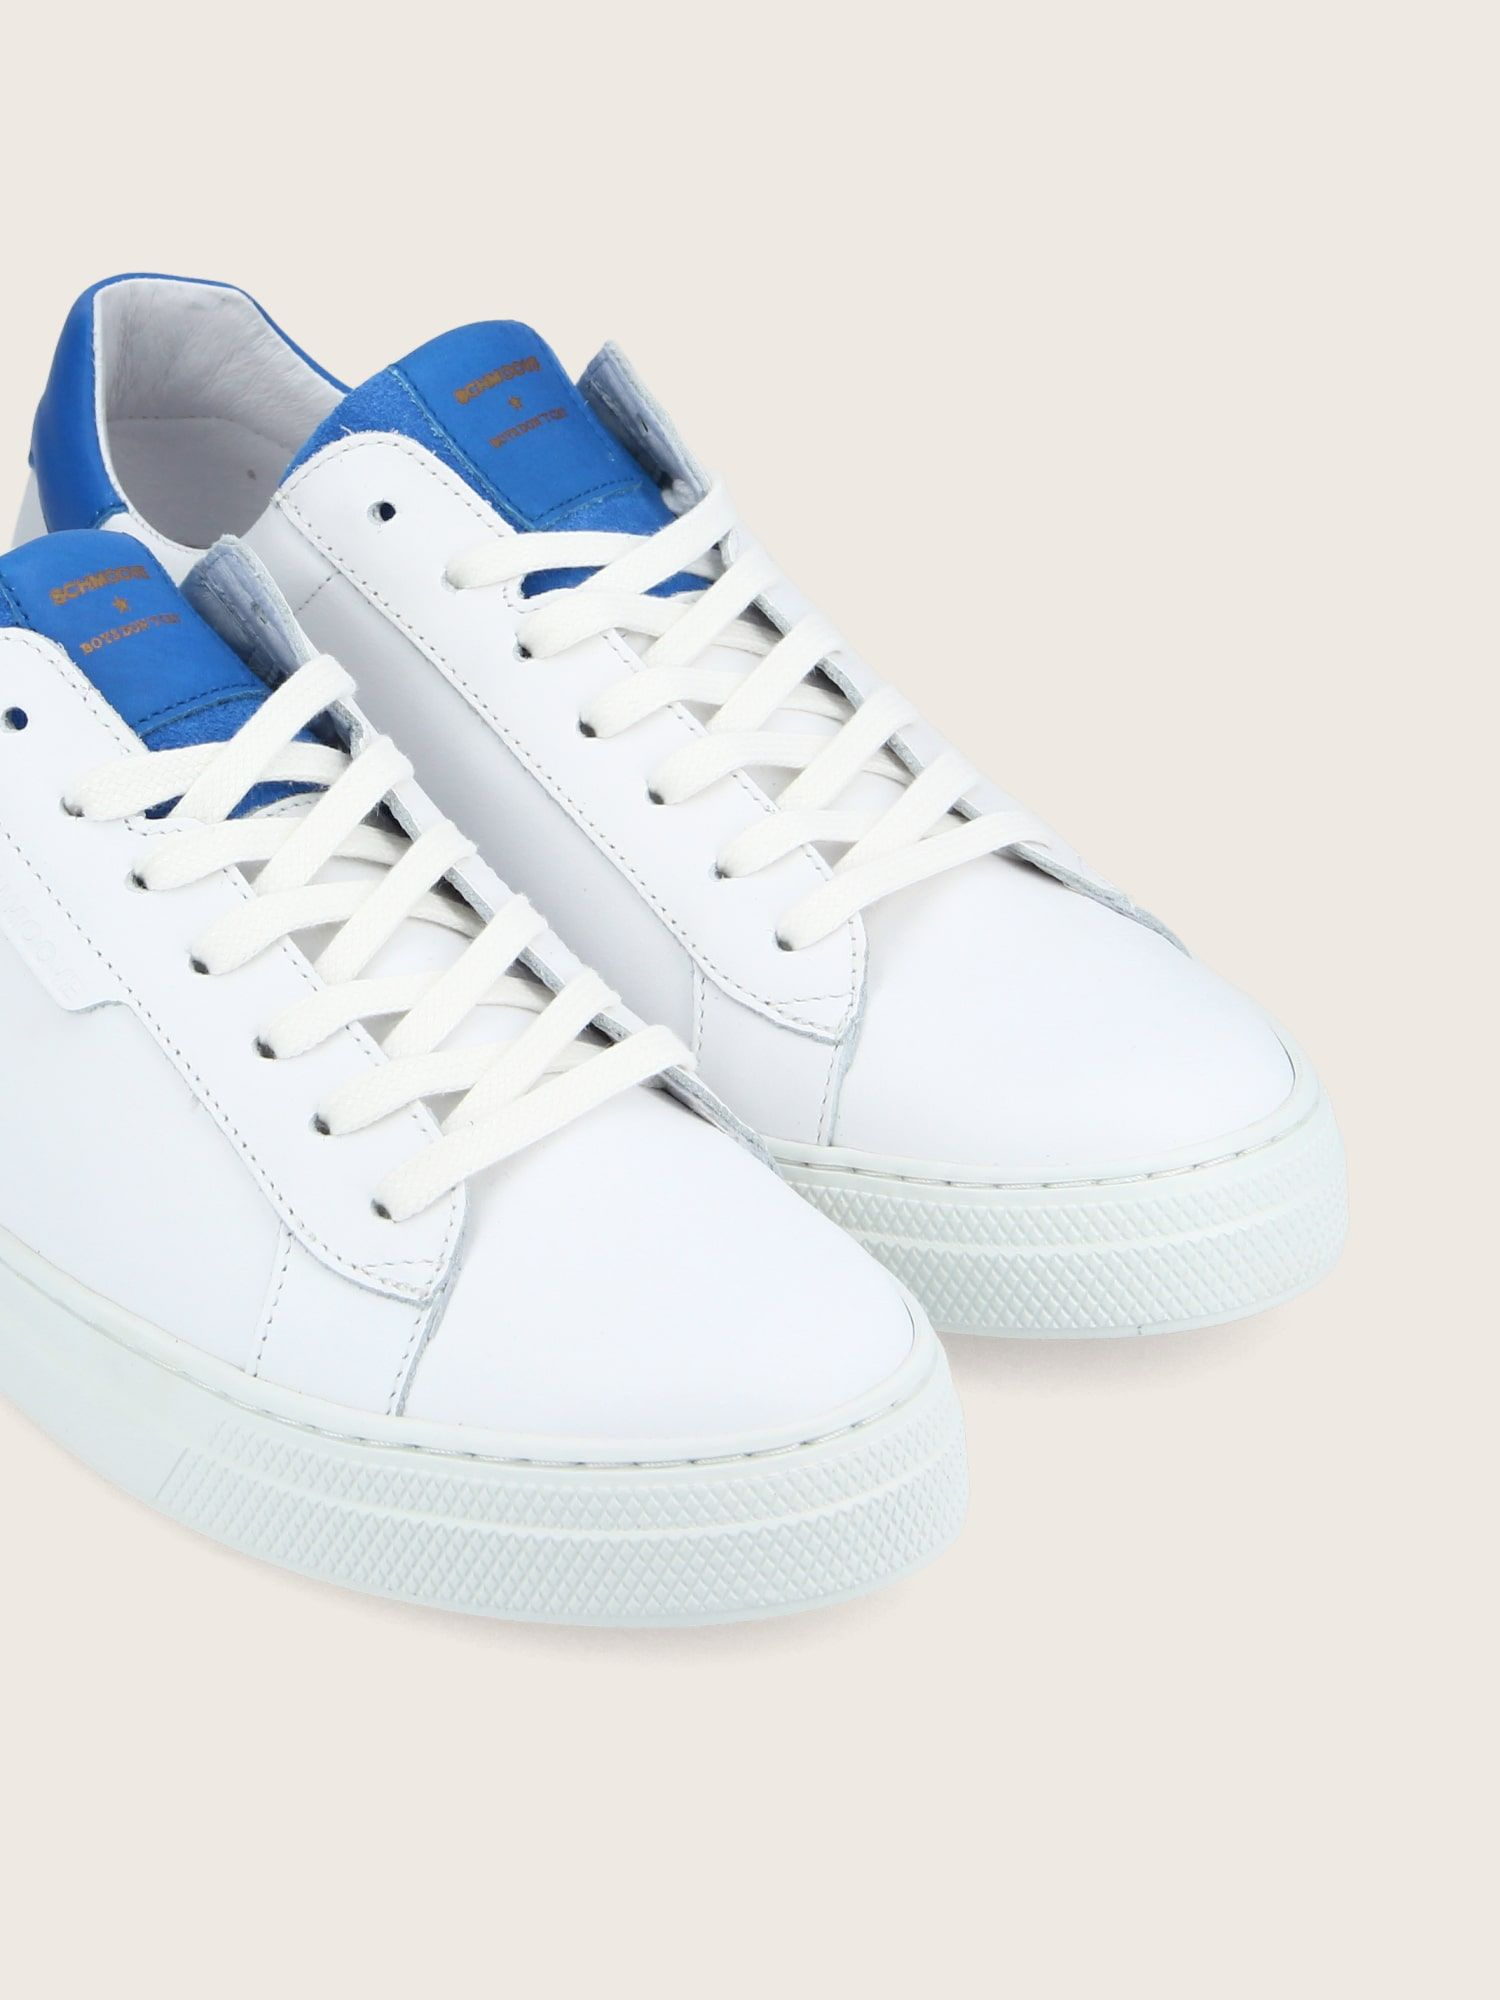 schmoove.fr SPARK CLAY - NAPPA/TONGNAPPA - WHITE/ELECTRIC BLUE